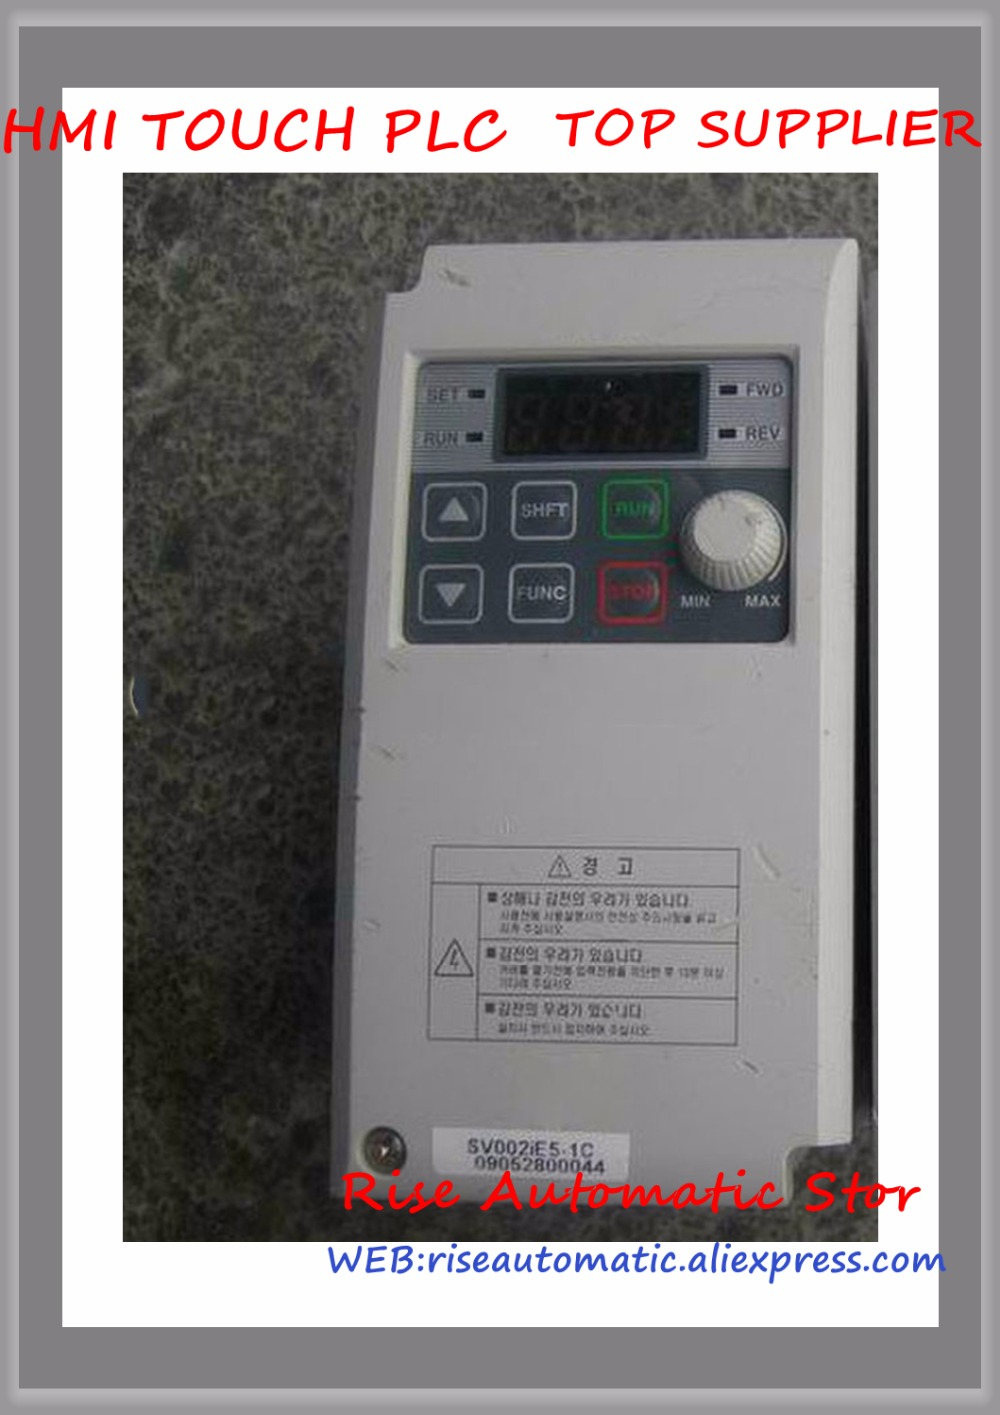 SV004iE5-1C new 0.4KW 3 phase 200V Inverter VFD frequency AC driveSV004iE5-1C new 0.4KW 3 phase 200V Inverter VFD frequency AC drive